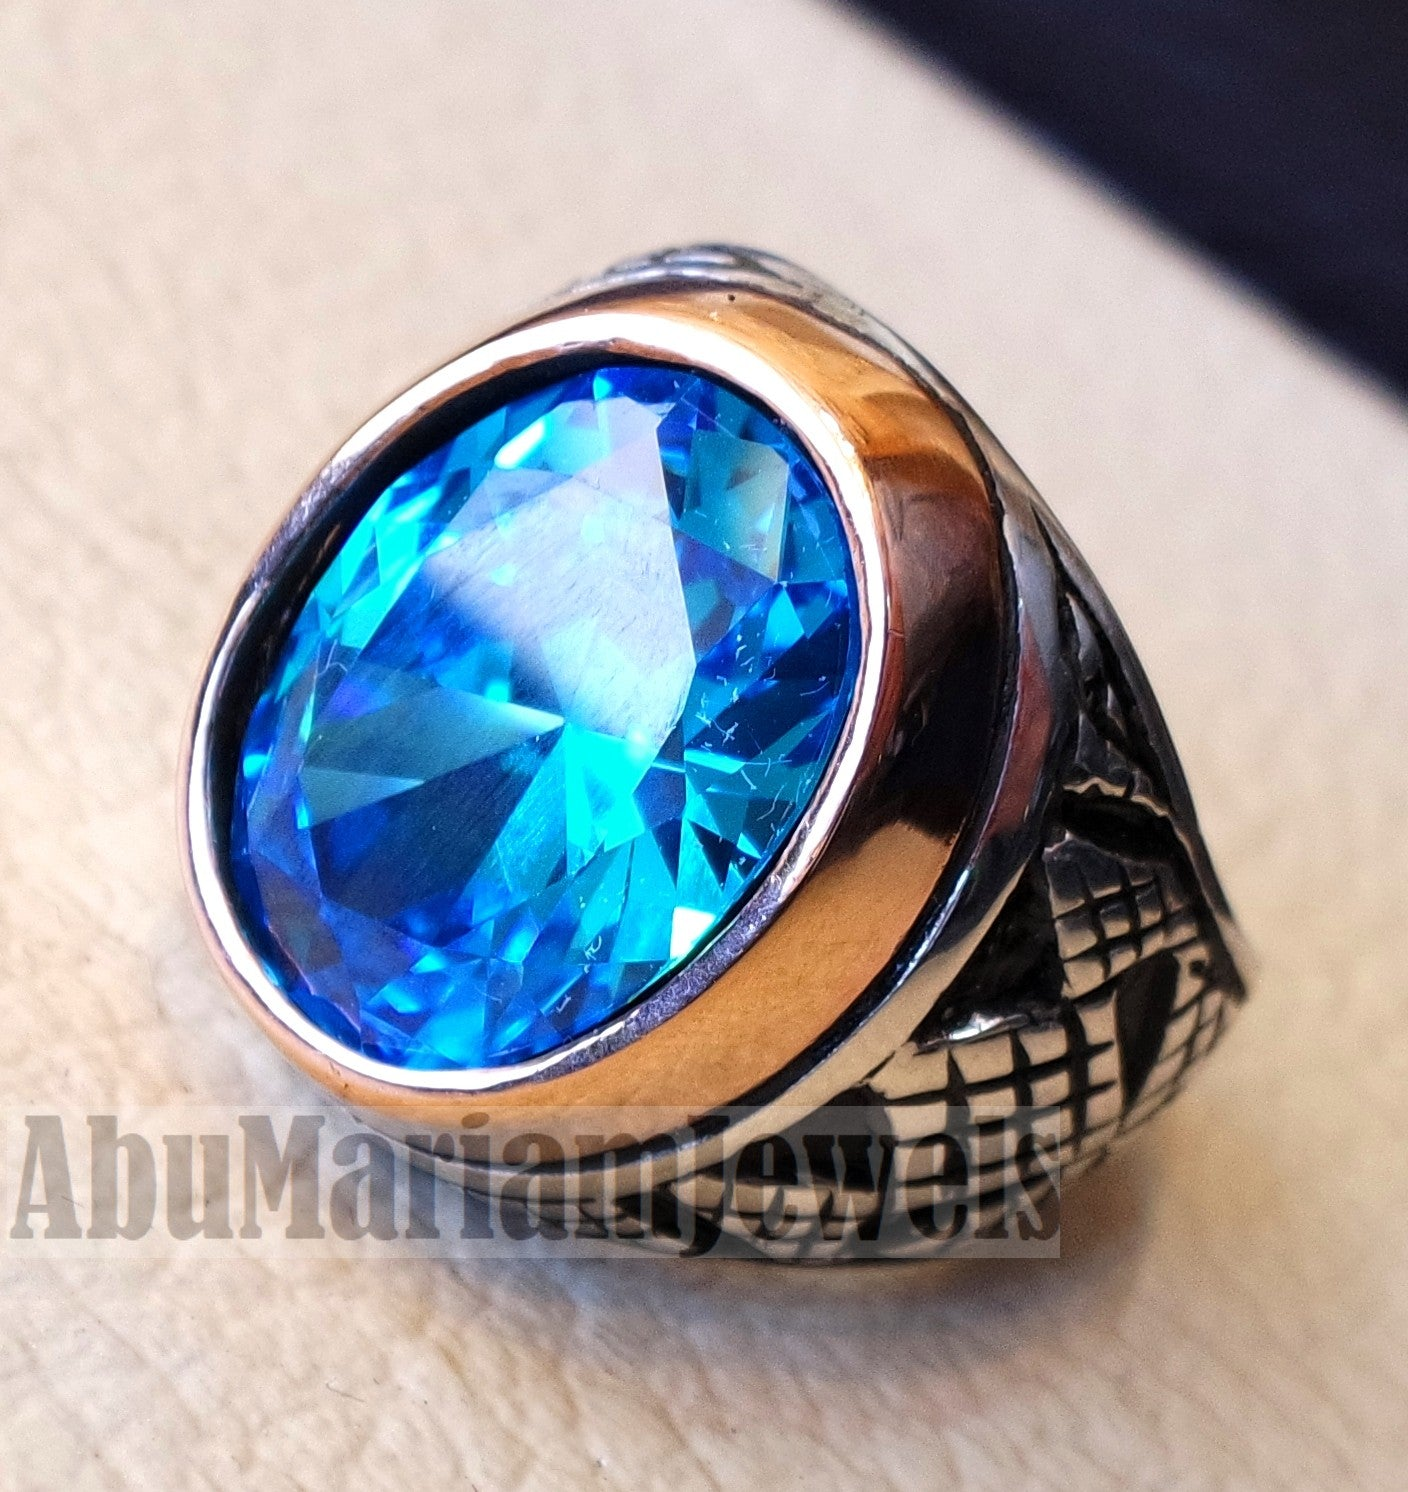 deep vivid sky blue cubic zircon oval 12 x 16 stone highest quality stone sterling silver 925 men ring and bronze frame all sizes jewelry